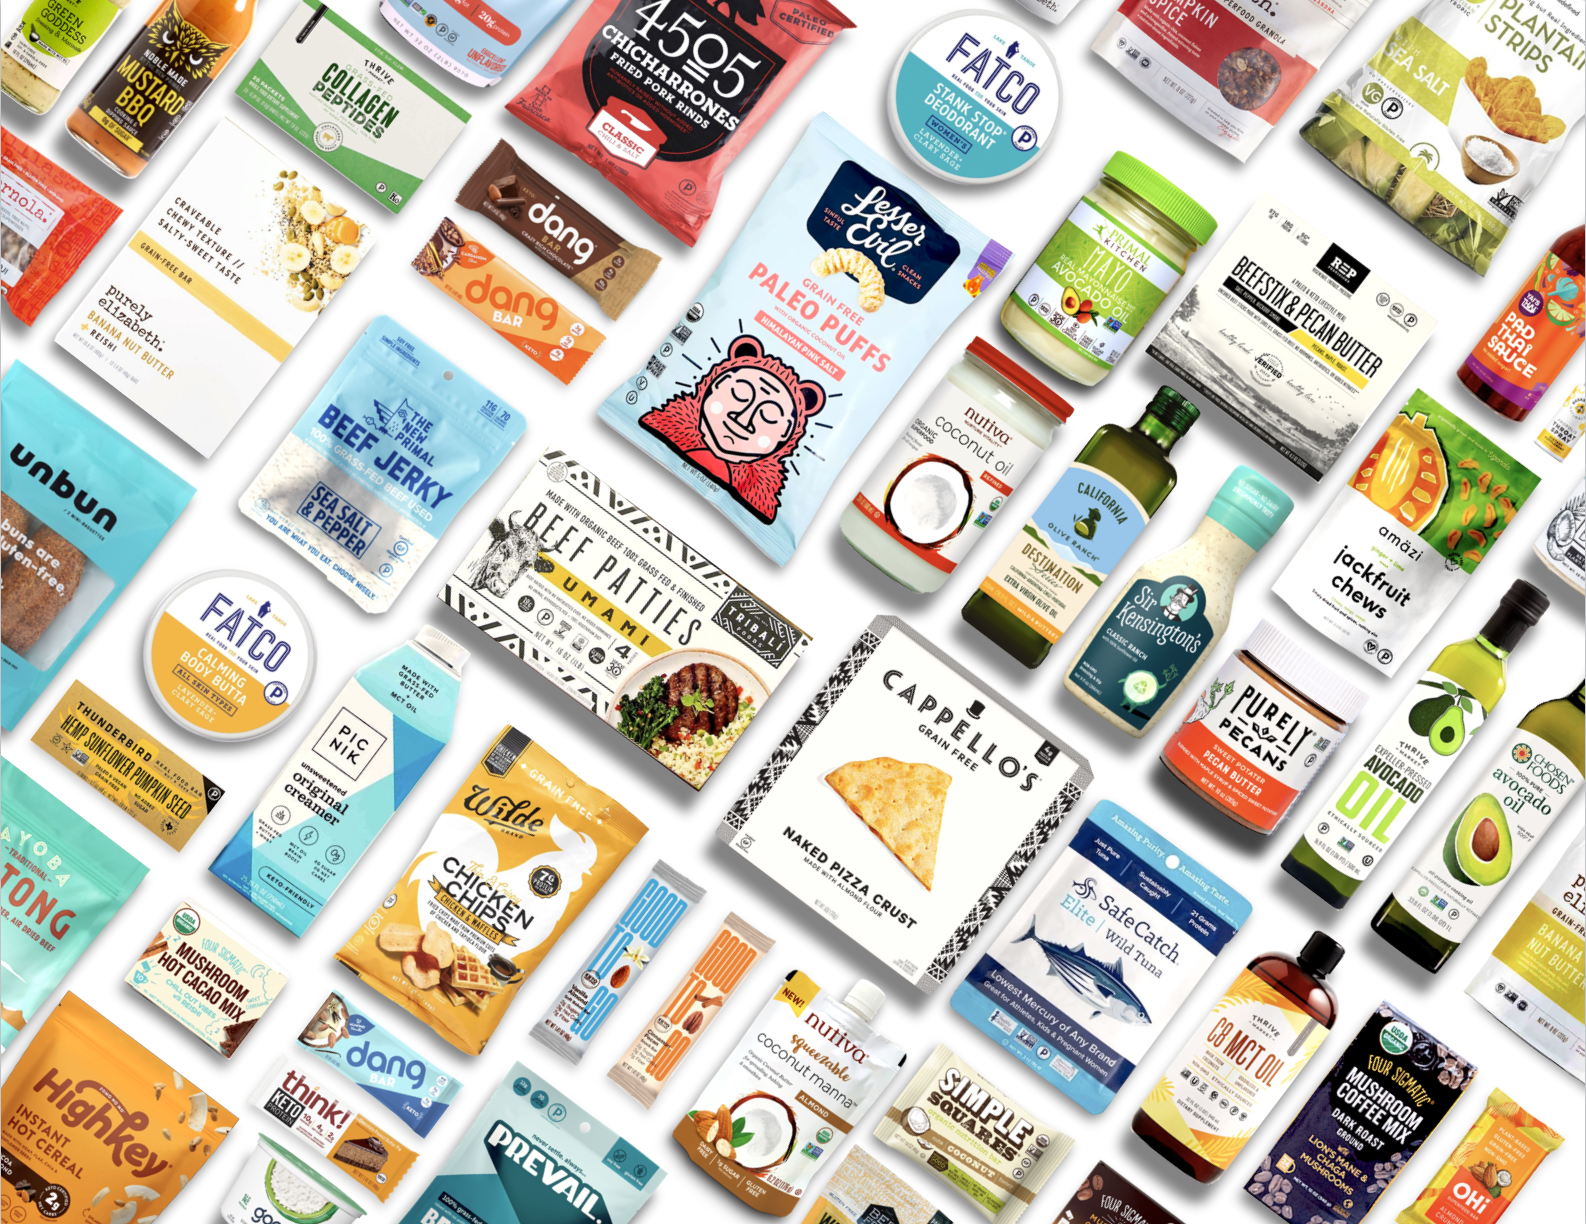 thousands of grain-free, paleo, keto certified brands